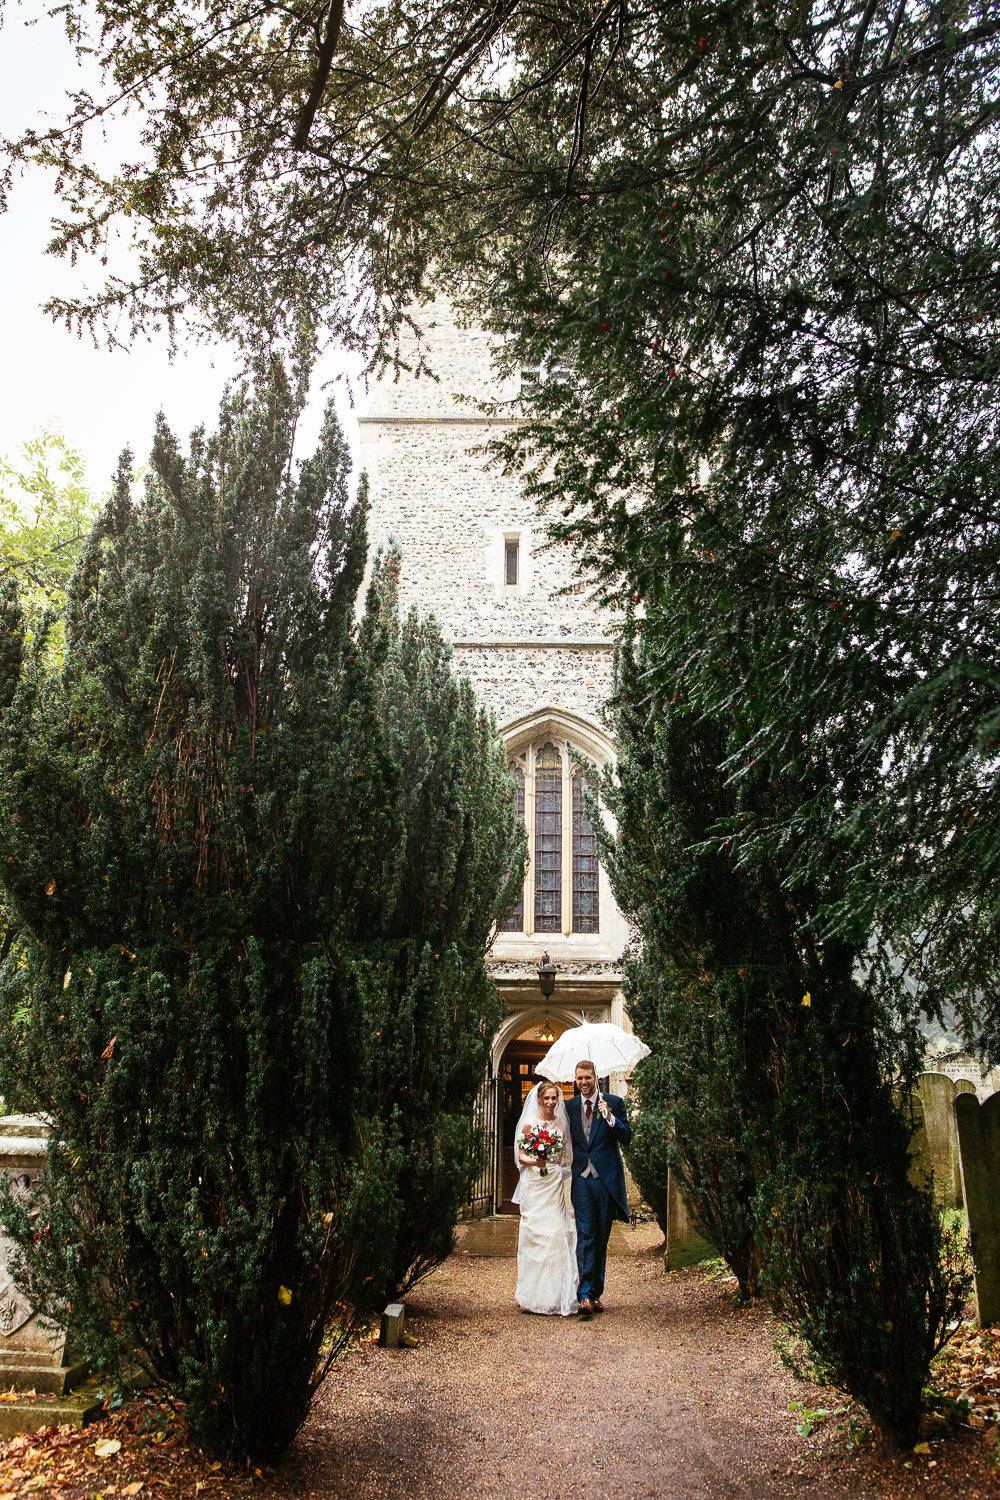 Matthew-and-Hannah-Wedding-Highlights-34.jpg